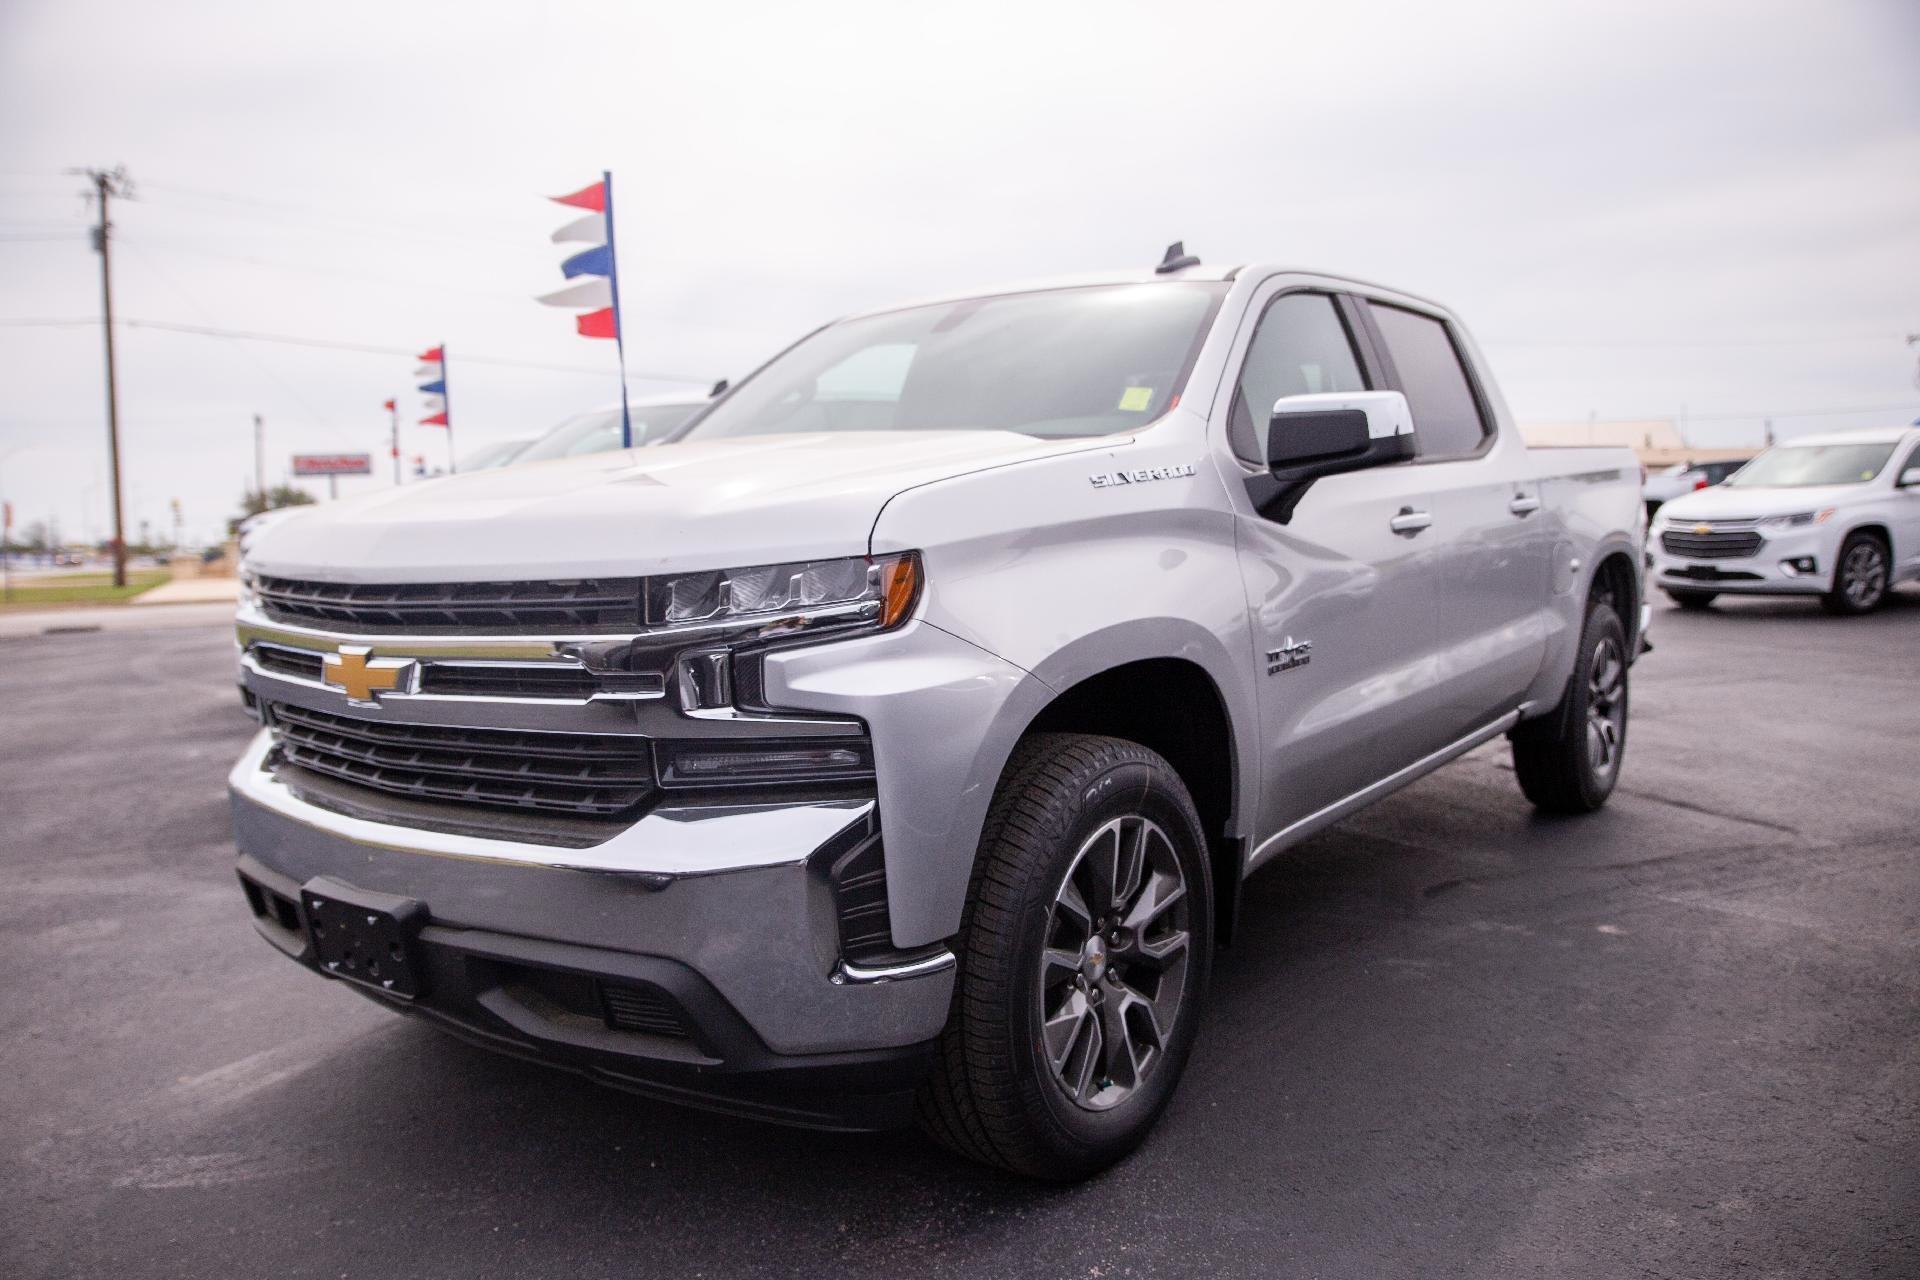 New 2019 Chevrolet-Colorado Work Truck Colorado Work Truck for sale $24,800 at M and V Leasing in Brooklyn NY 11223 1